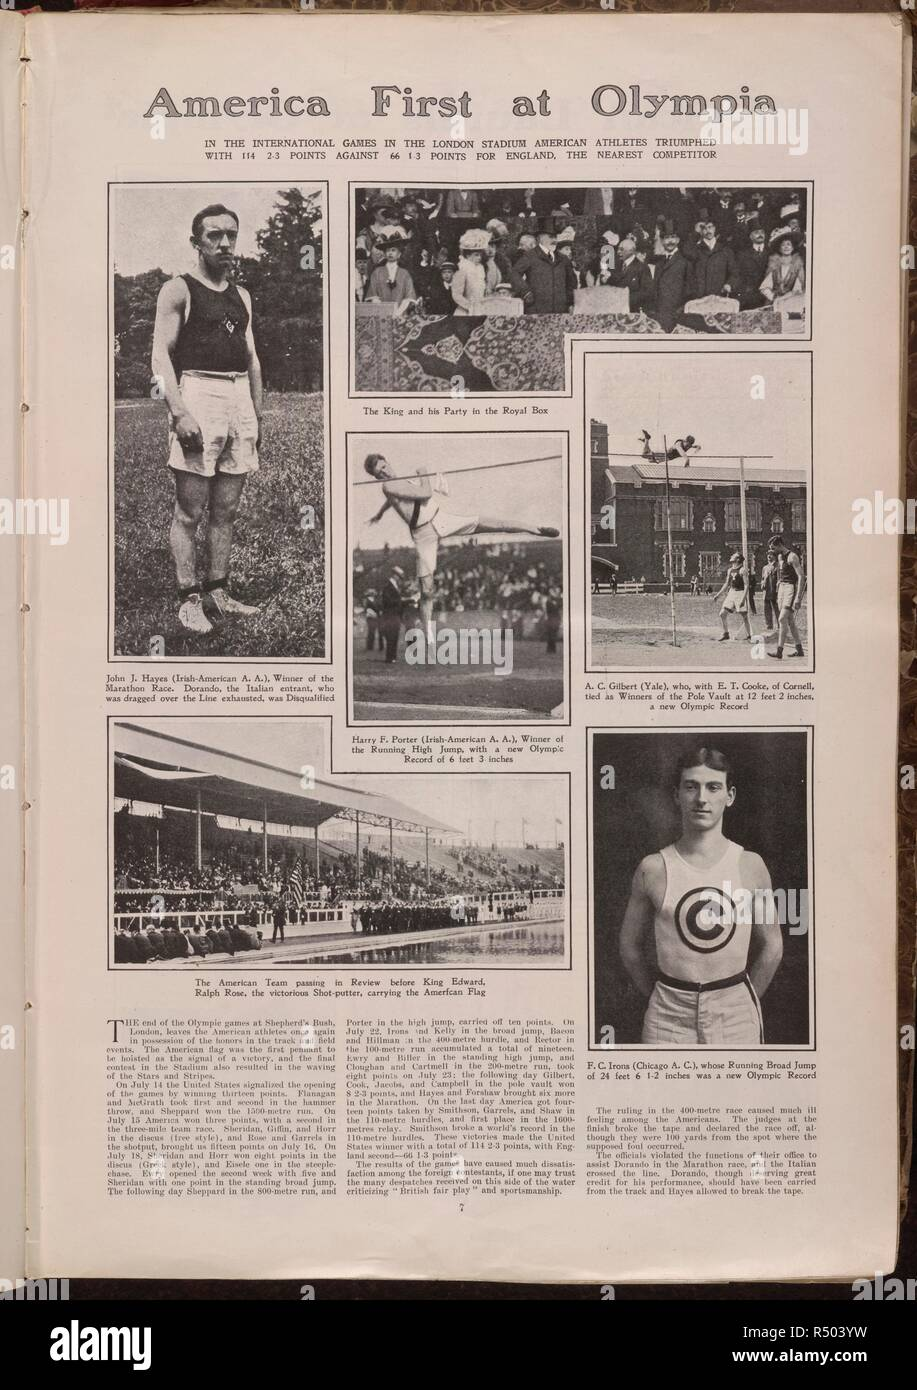 America first at Olympia. A newspaper report of the American successes at the 1908 Olympic games. Harpers weekly. 01/08/1908. The newspaper report refers to the Shepherd's bush stadium. Athletes mentioned are : Alfred Gilbert (pole vault); John J. Hayes (marathon); Ralph Rose (Shot put); Harry F. Porter (high jump); Edward Cooke (pole vault) and Frank C. Irons (long jump). Source: Colindale. Language: English. - Stock Image